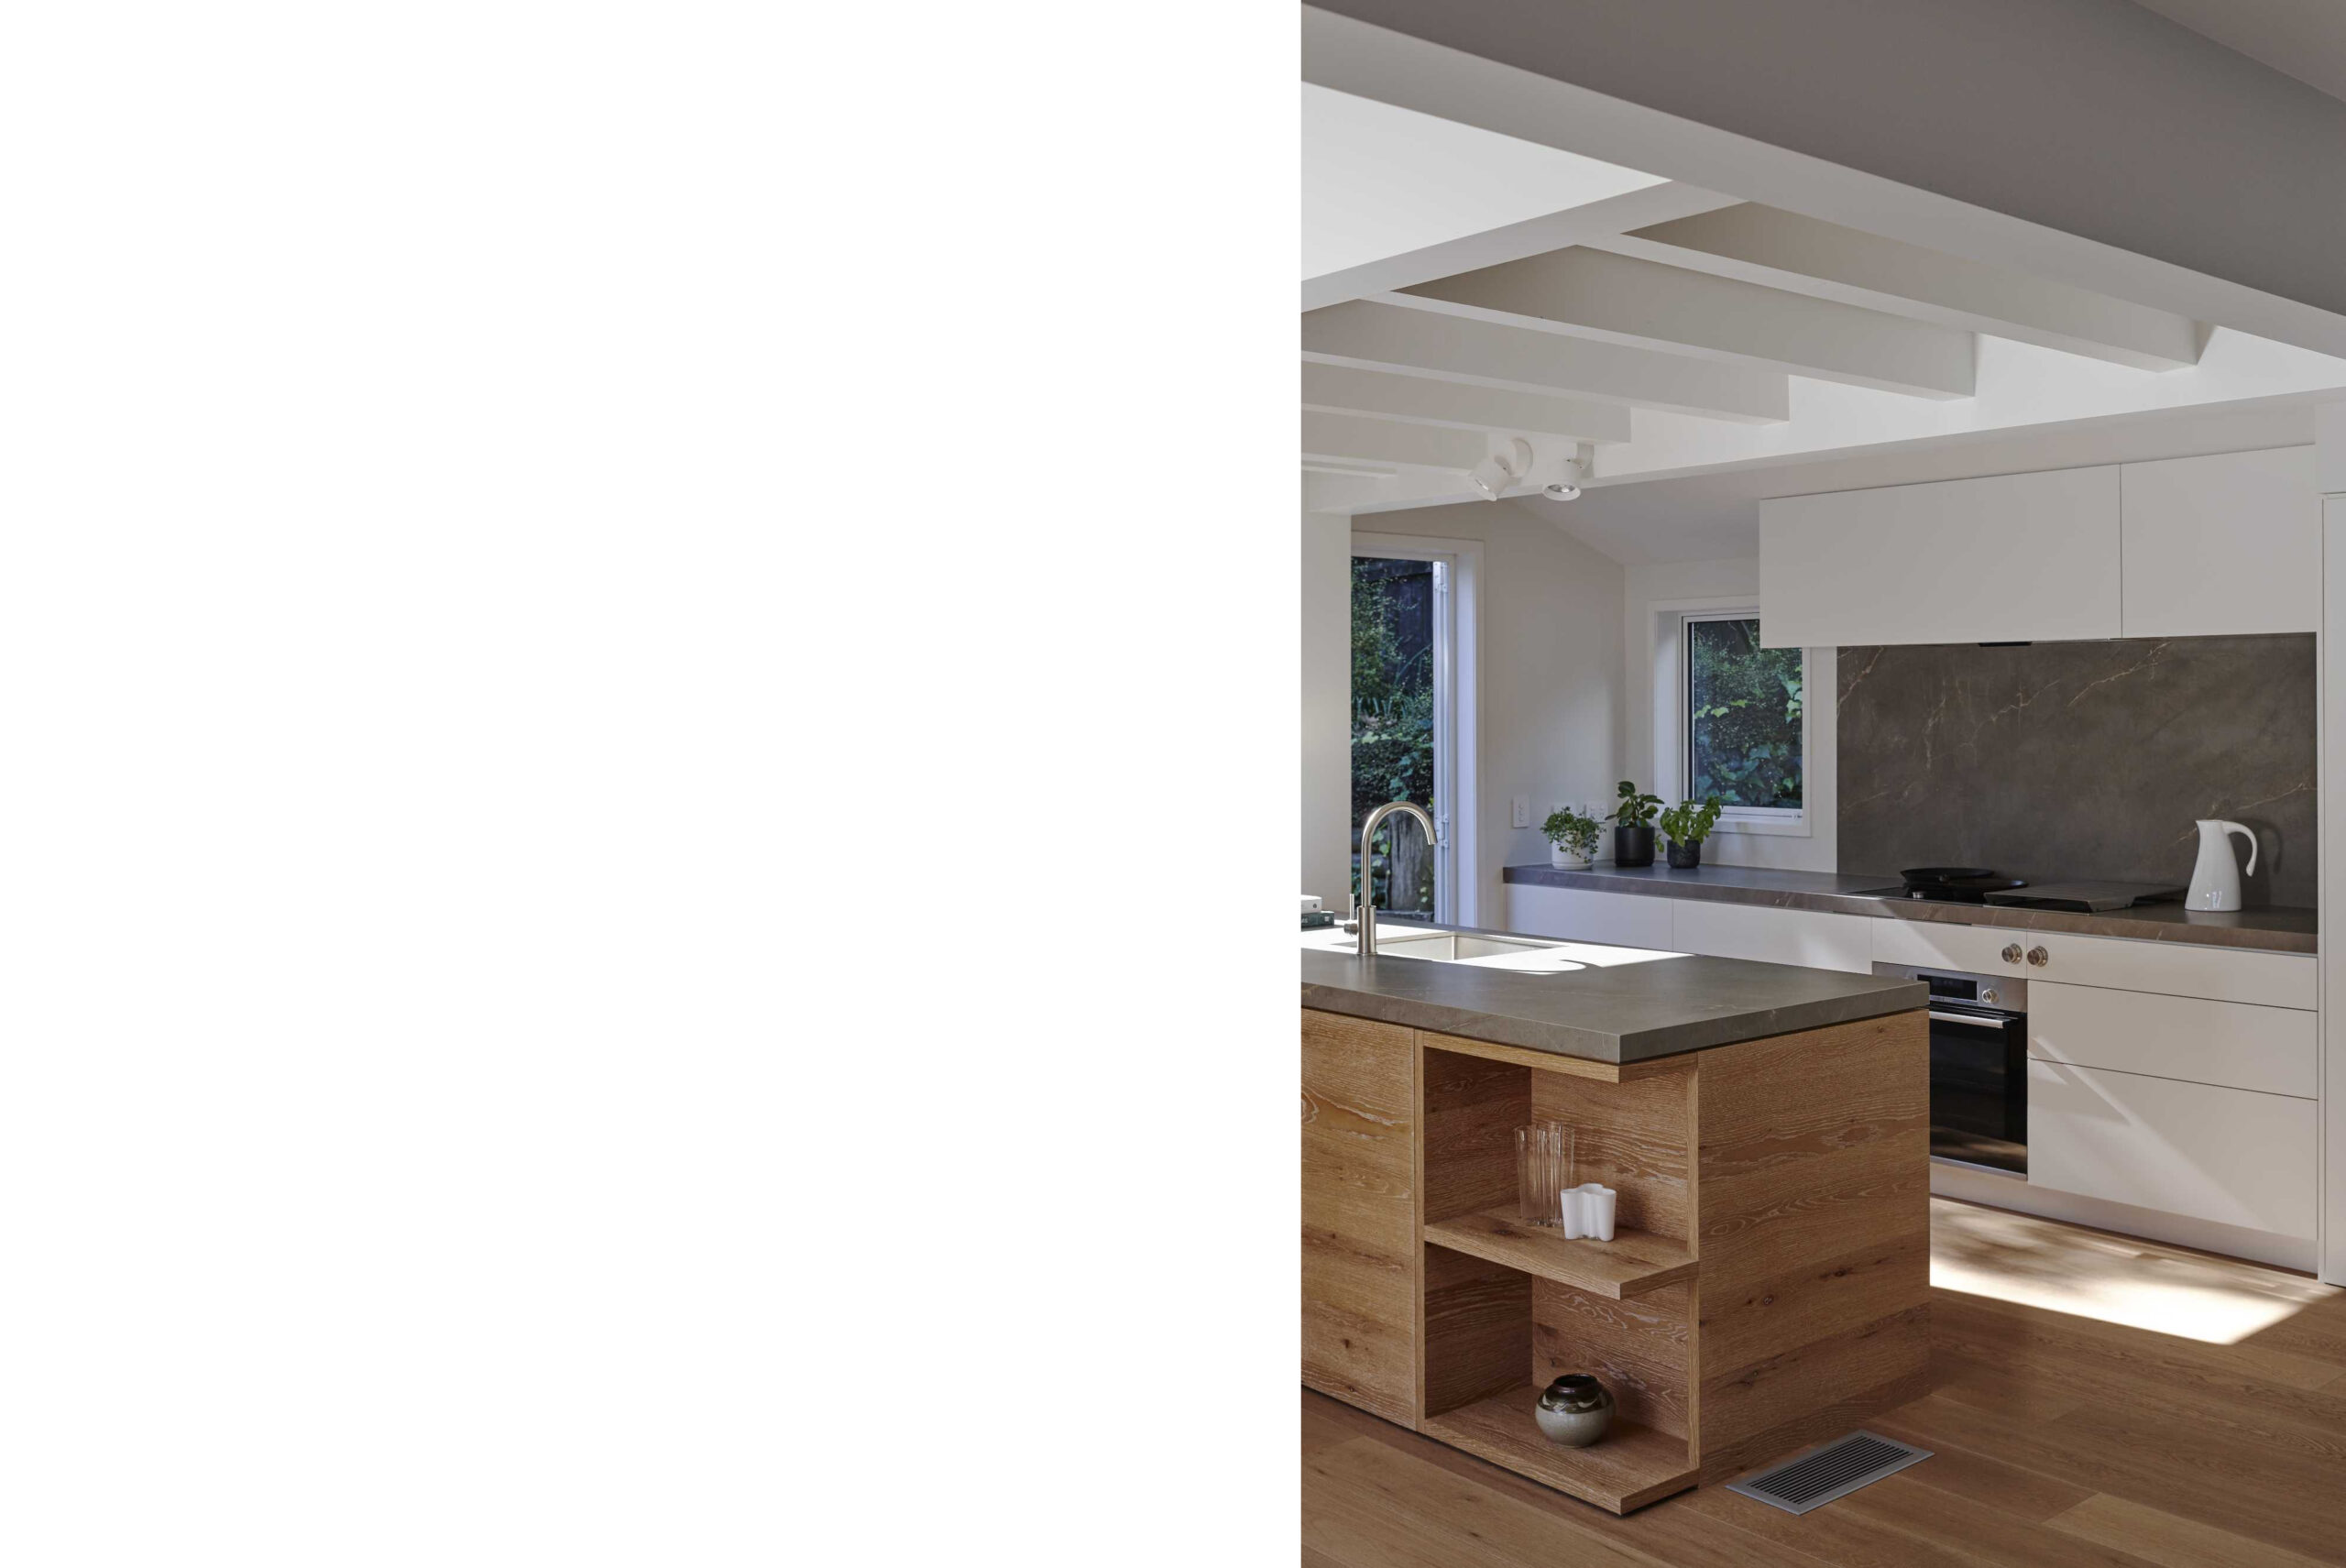 Open plan kitchen with and exposed beams